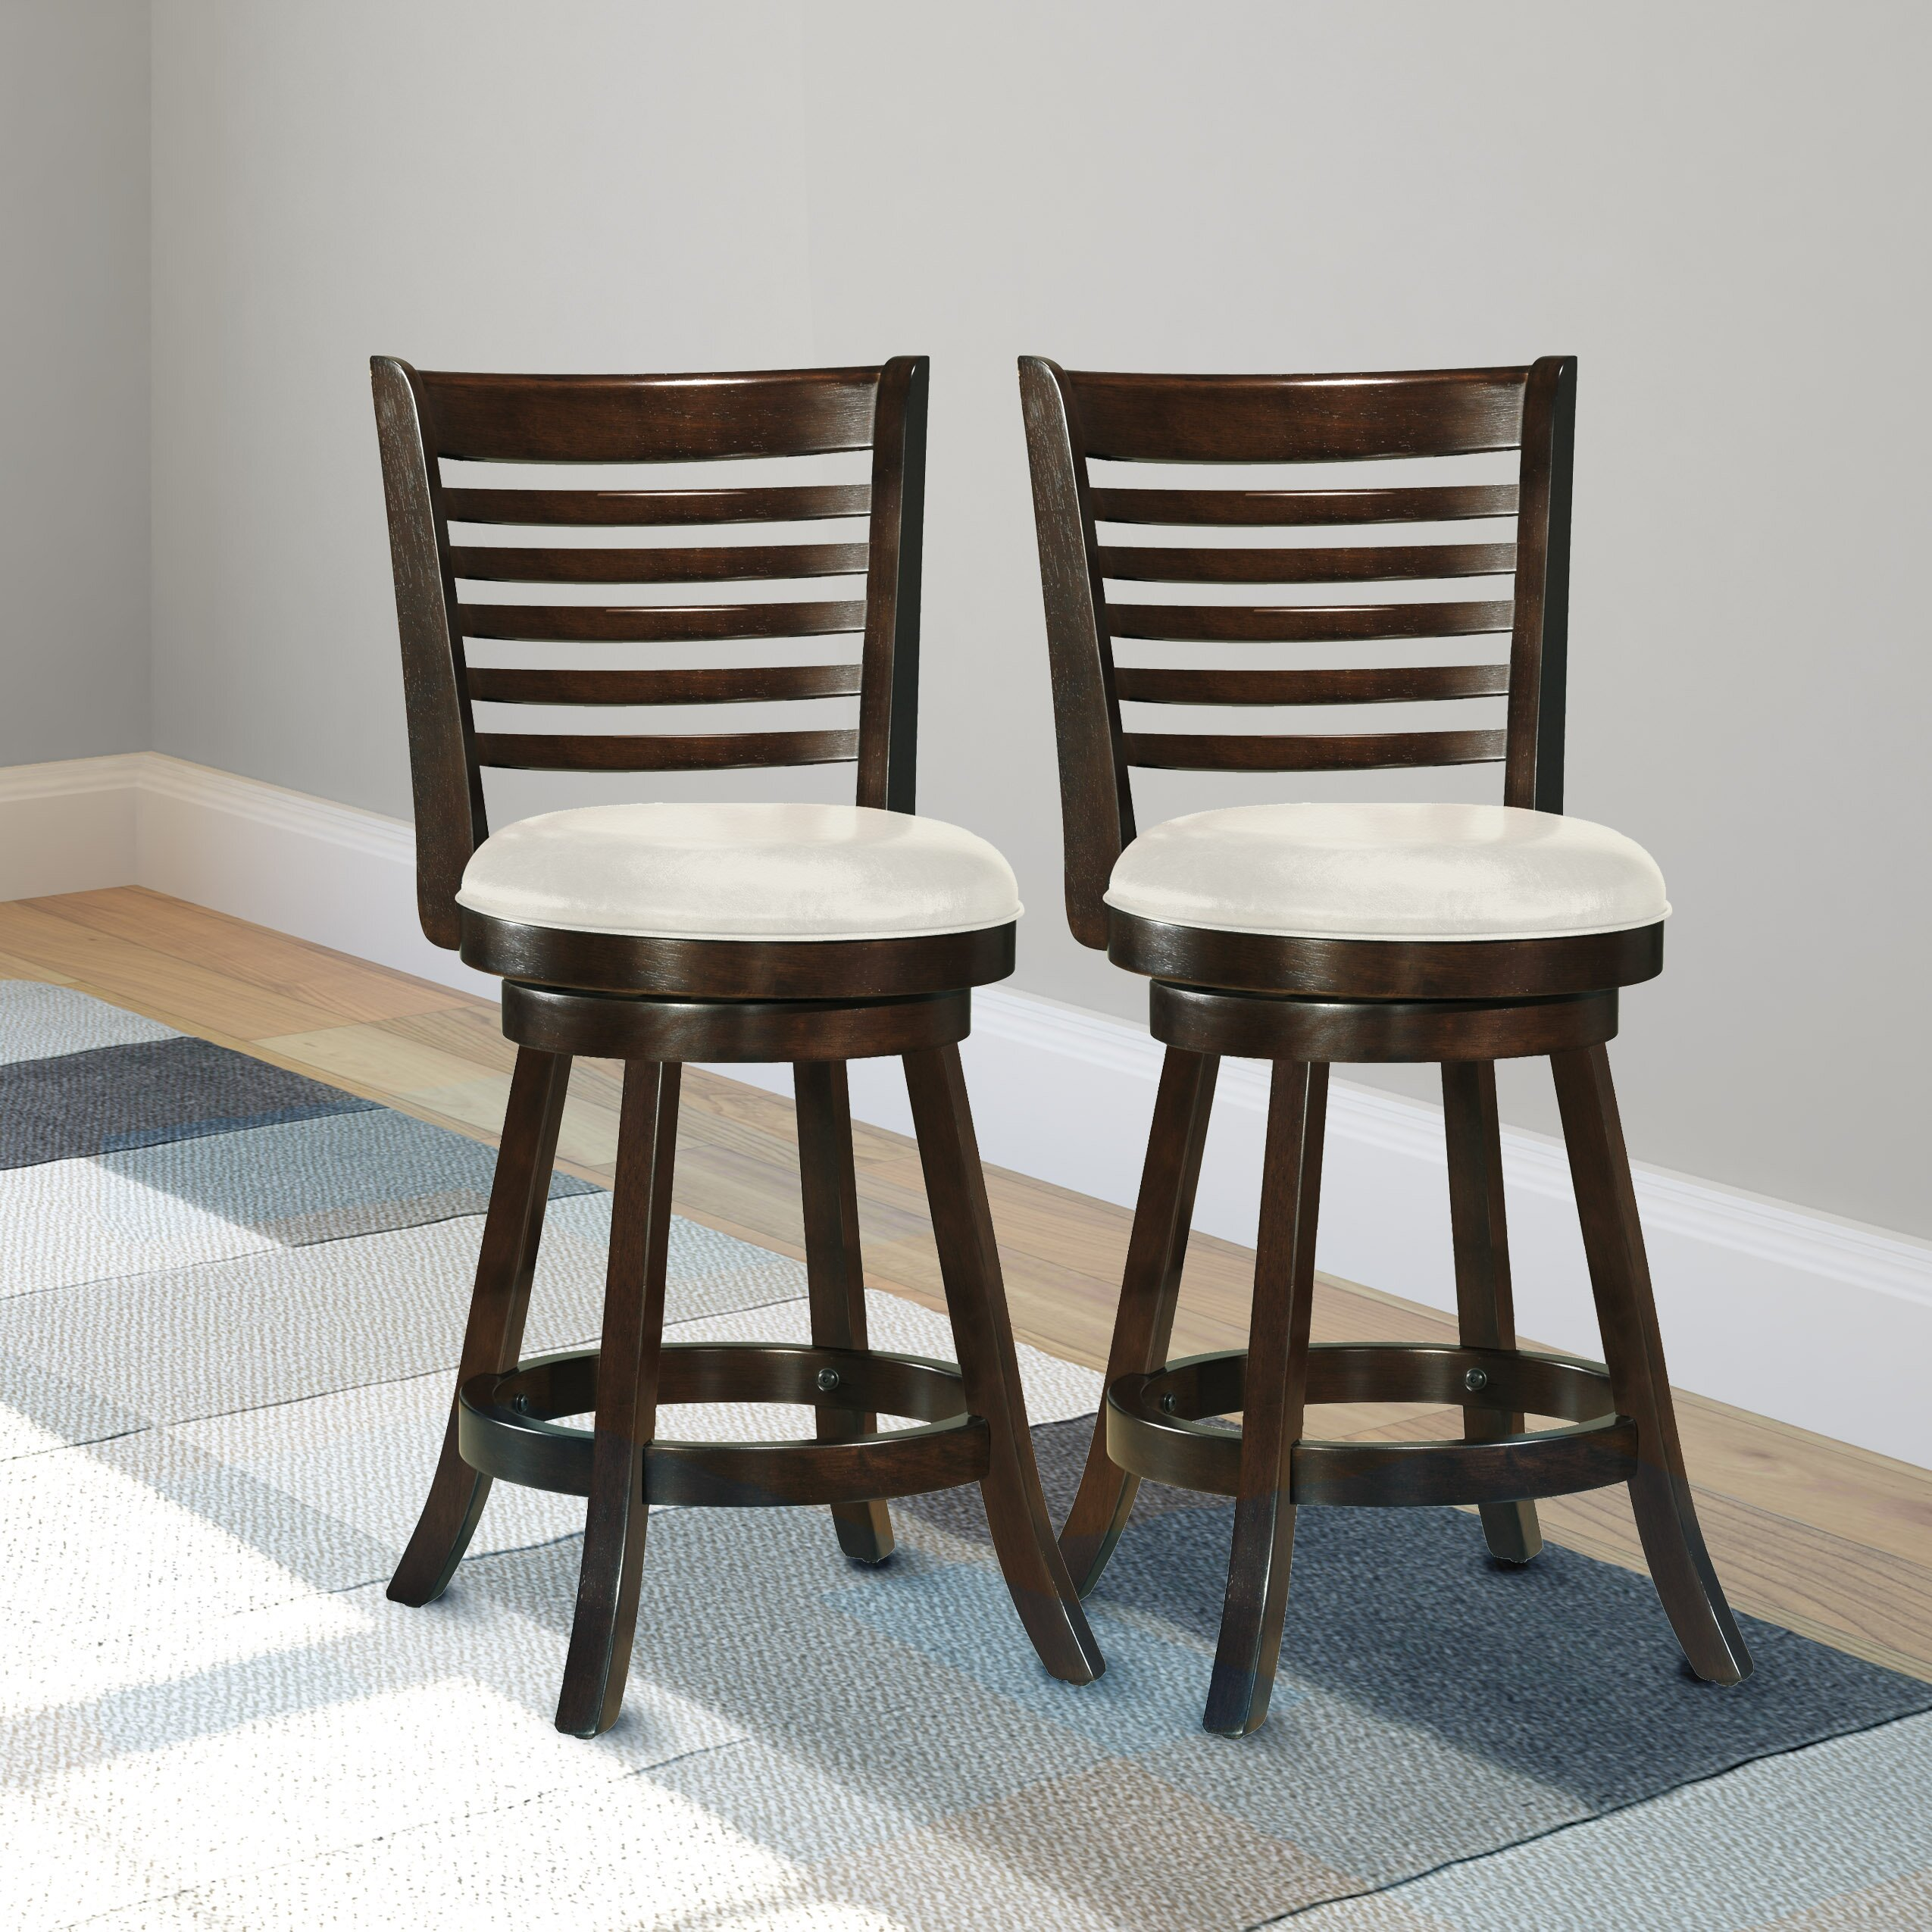 Amazing photo of  Woodgrove 24 Swivel Bar Stool with Cushion & Reviews Wayfair with #332920 color and 2550x2550 pixels